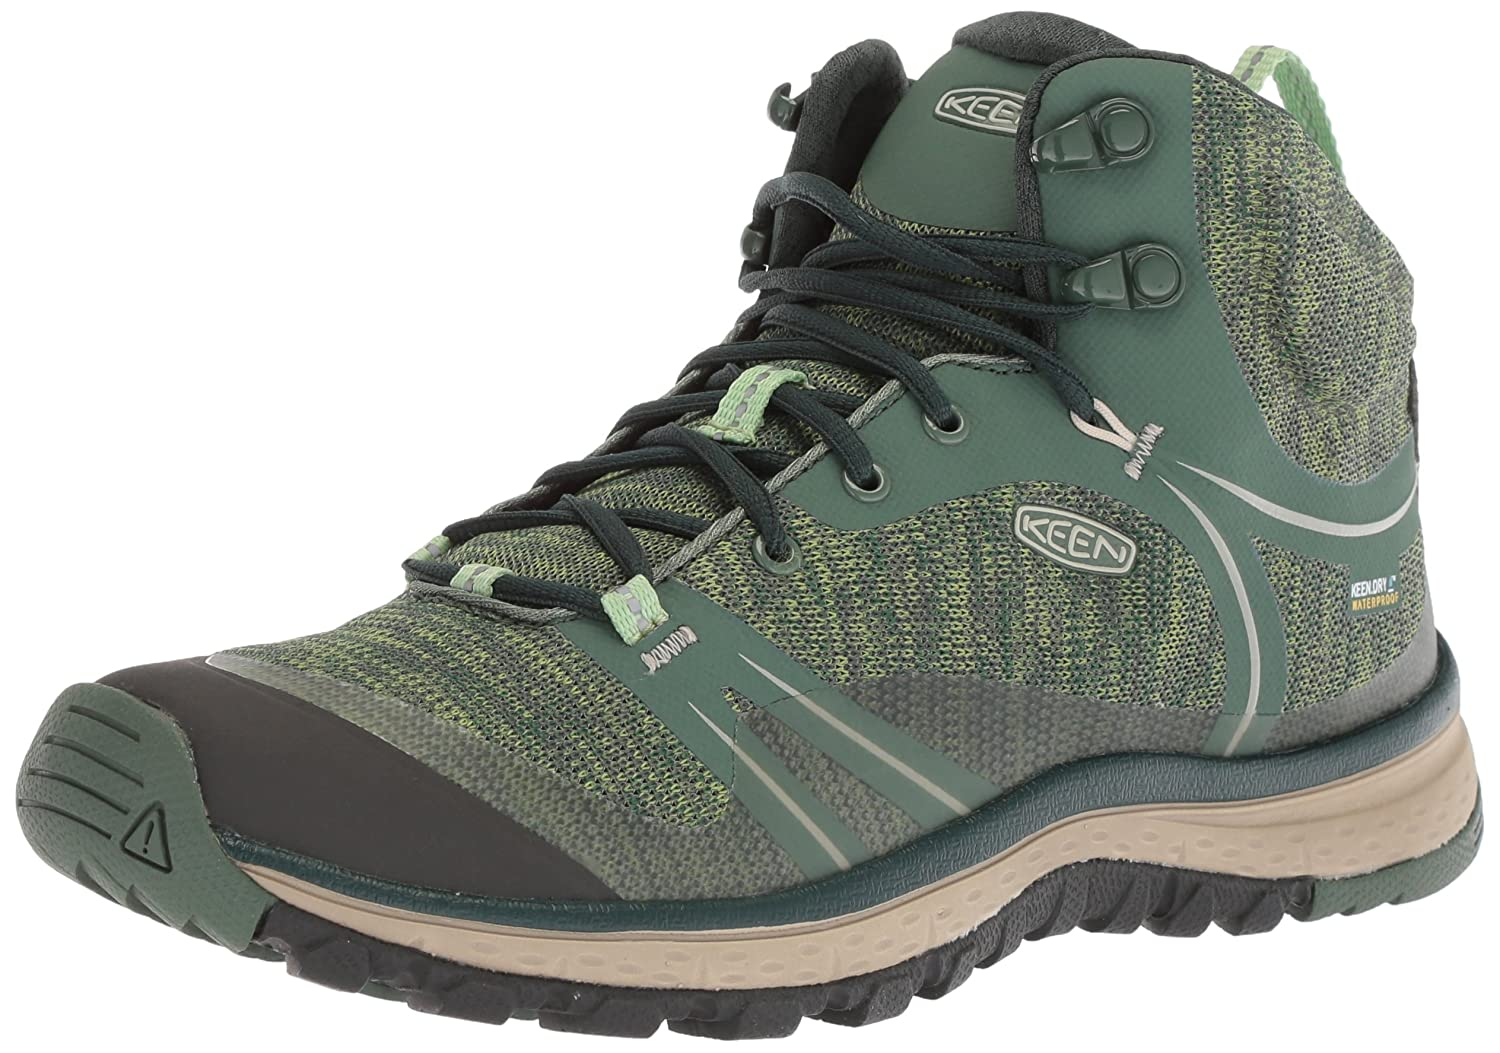 KEEN Women's Terradora Mid Waterproof Hiking Shoe B071DHBCKB 5 B(M) US|Duck Green/Quiet Green